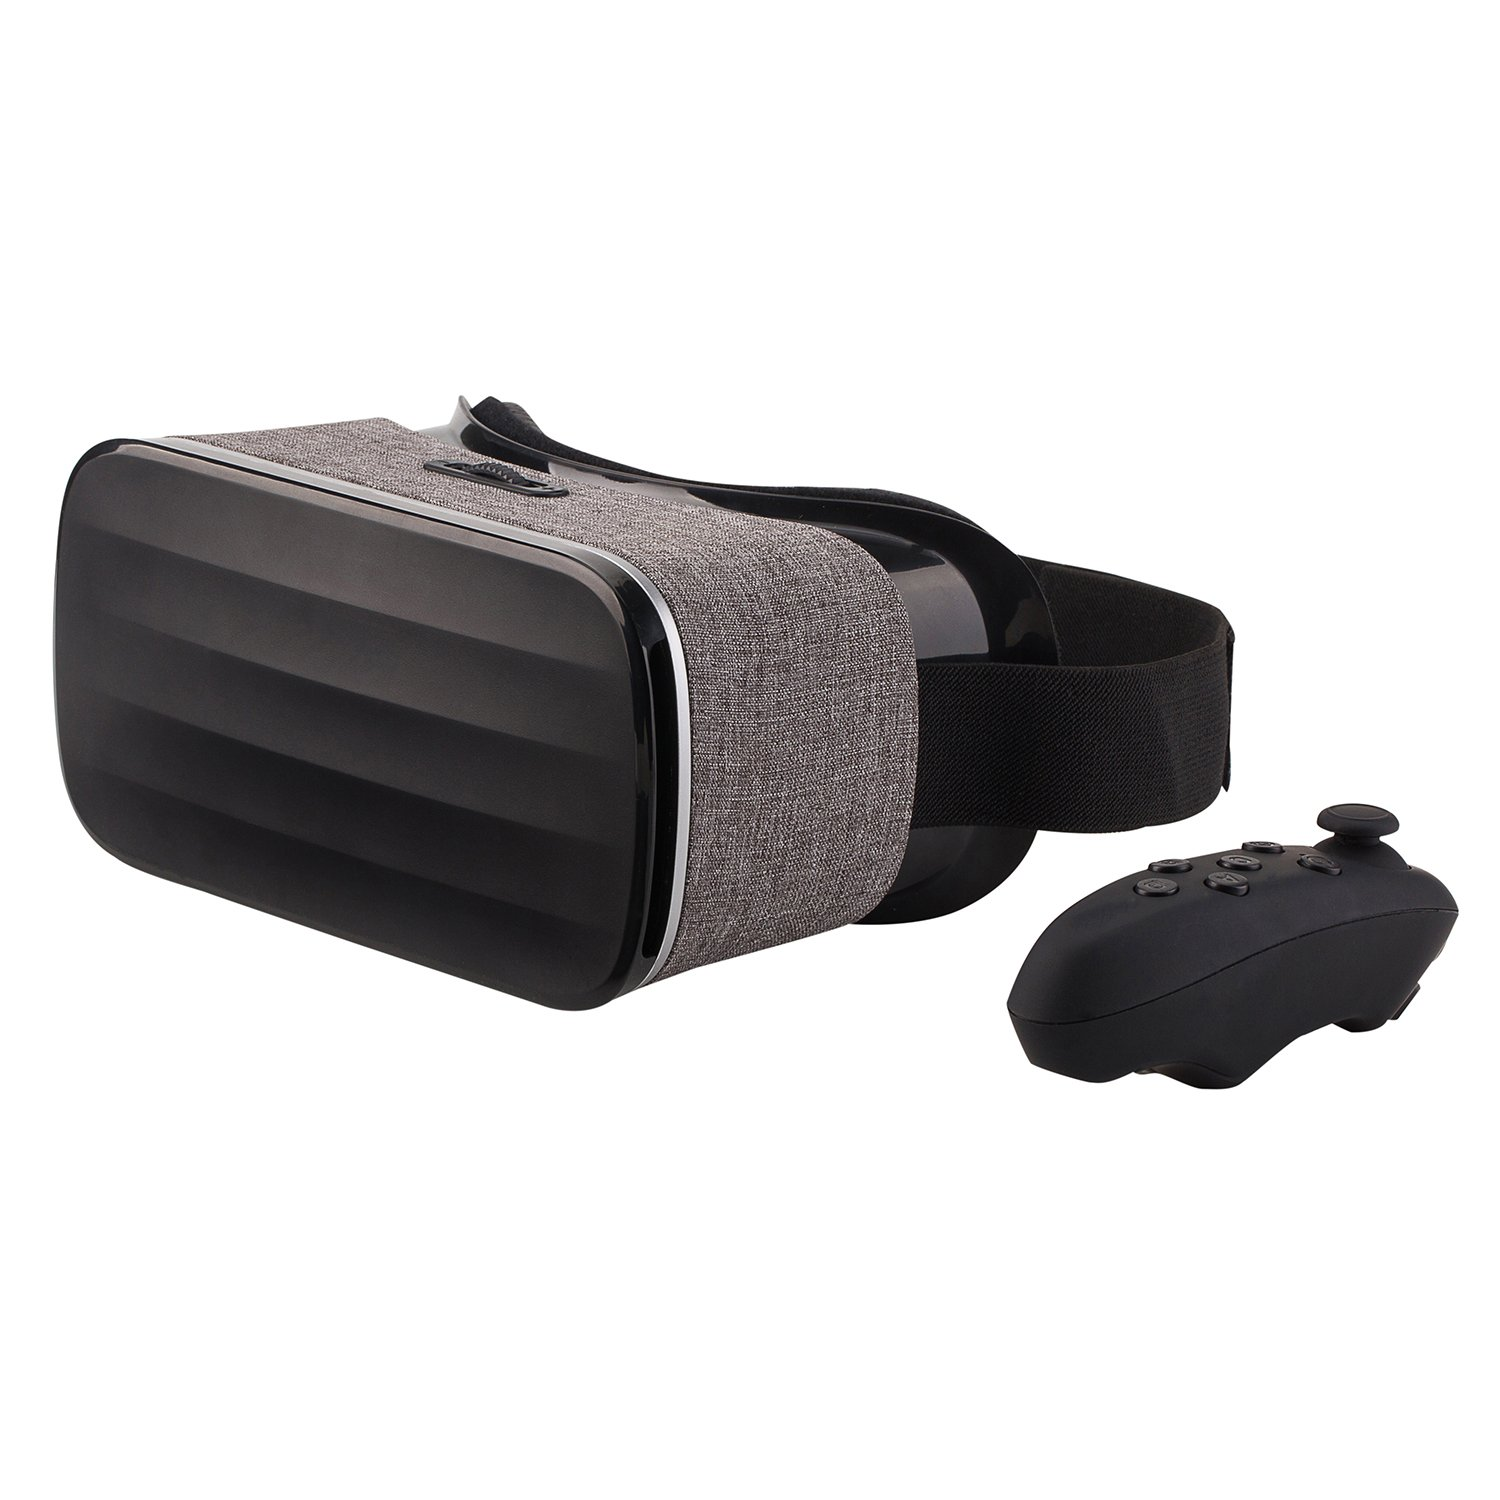 NeuTab VR 2nd Gen Virtual Reality VR Headset 3D Glasses with Remote Controller 360 Degree Immersive Movies and Games for IOS, Android Phones, iPhone X and Other 3.5-6.3 inch Screens